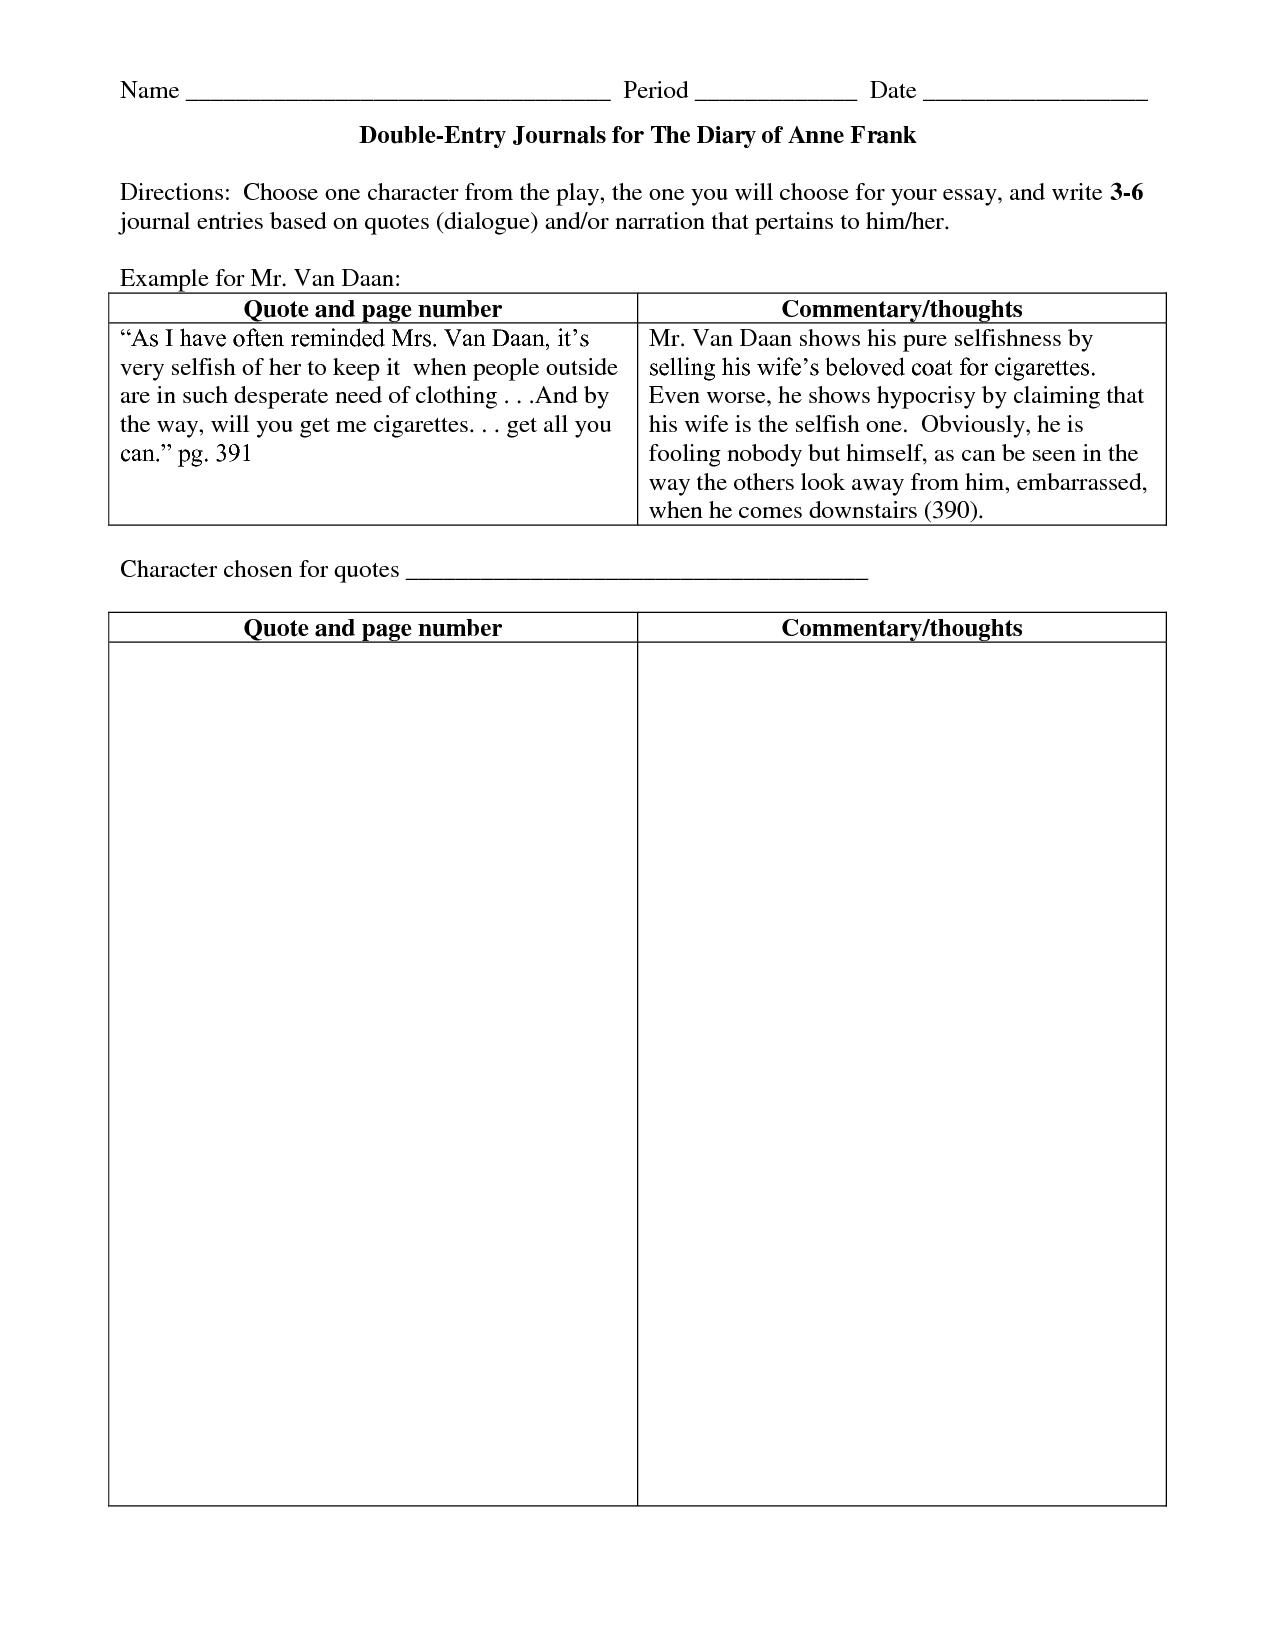 Double Entry Journals Examples | Double Entry Journal, Diary Within Double Entry Journal Template For Word